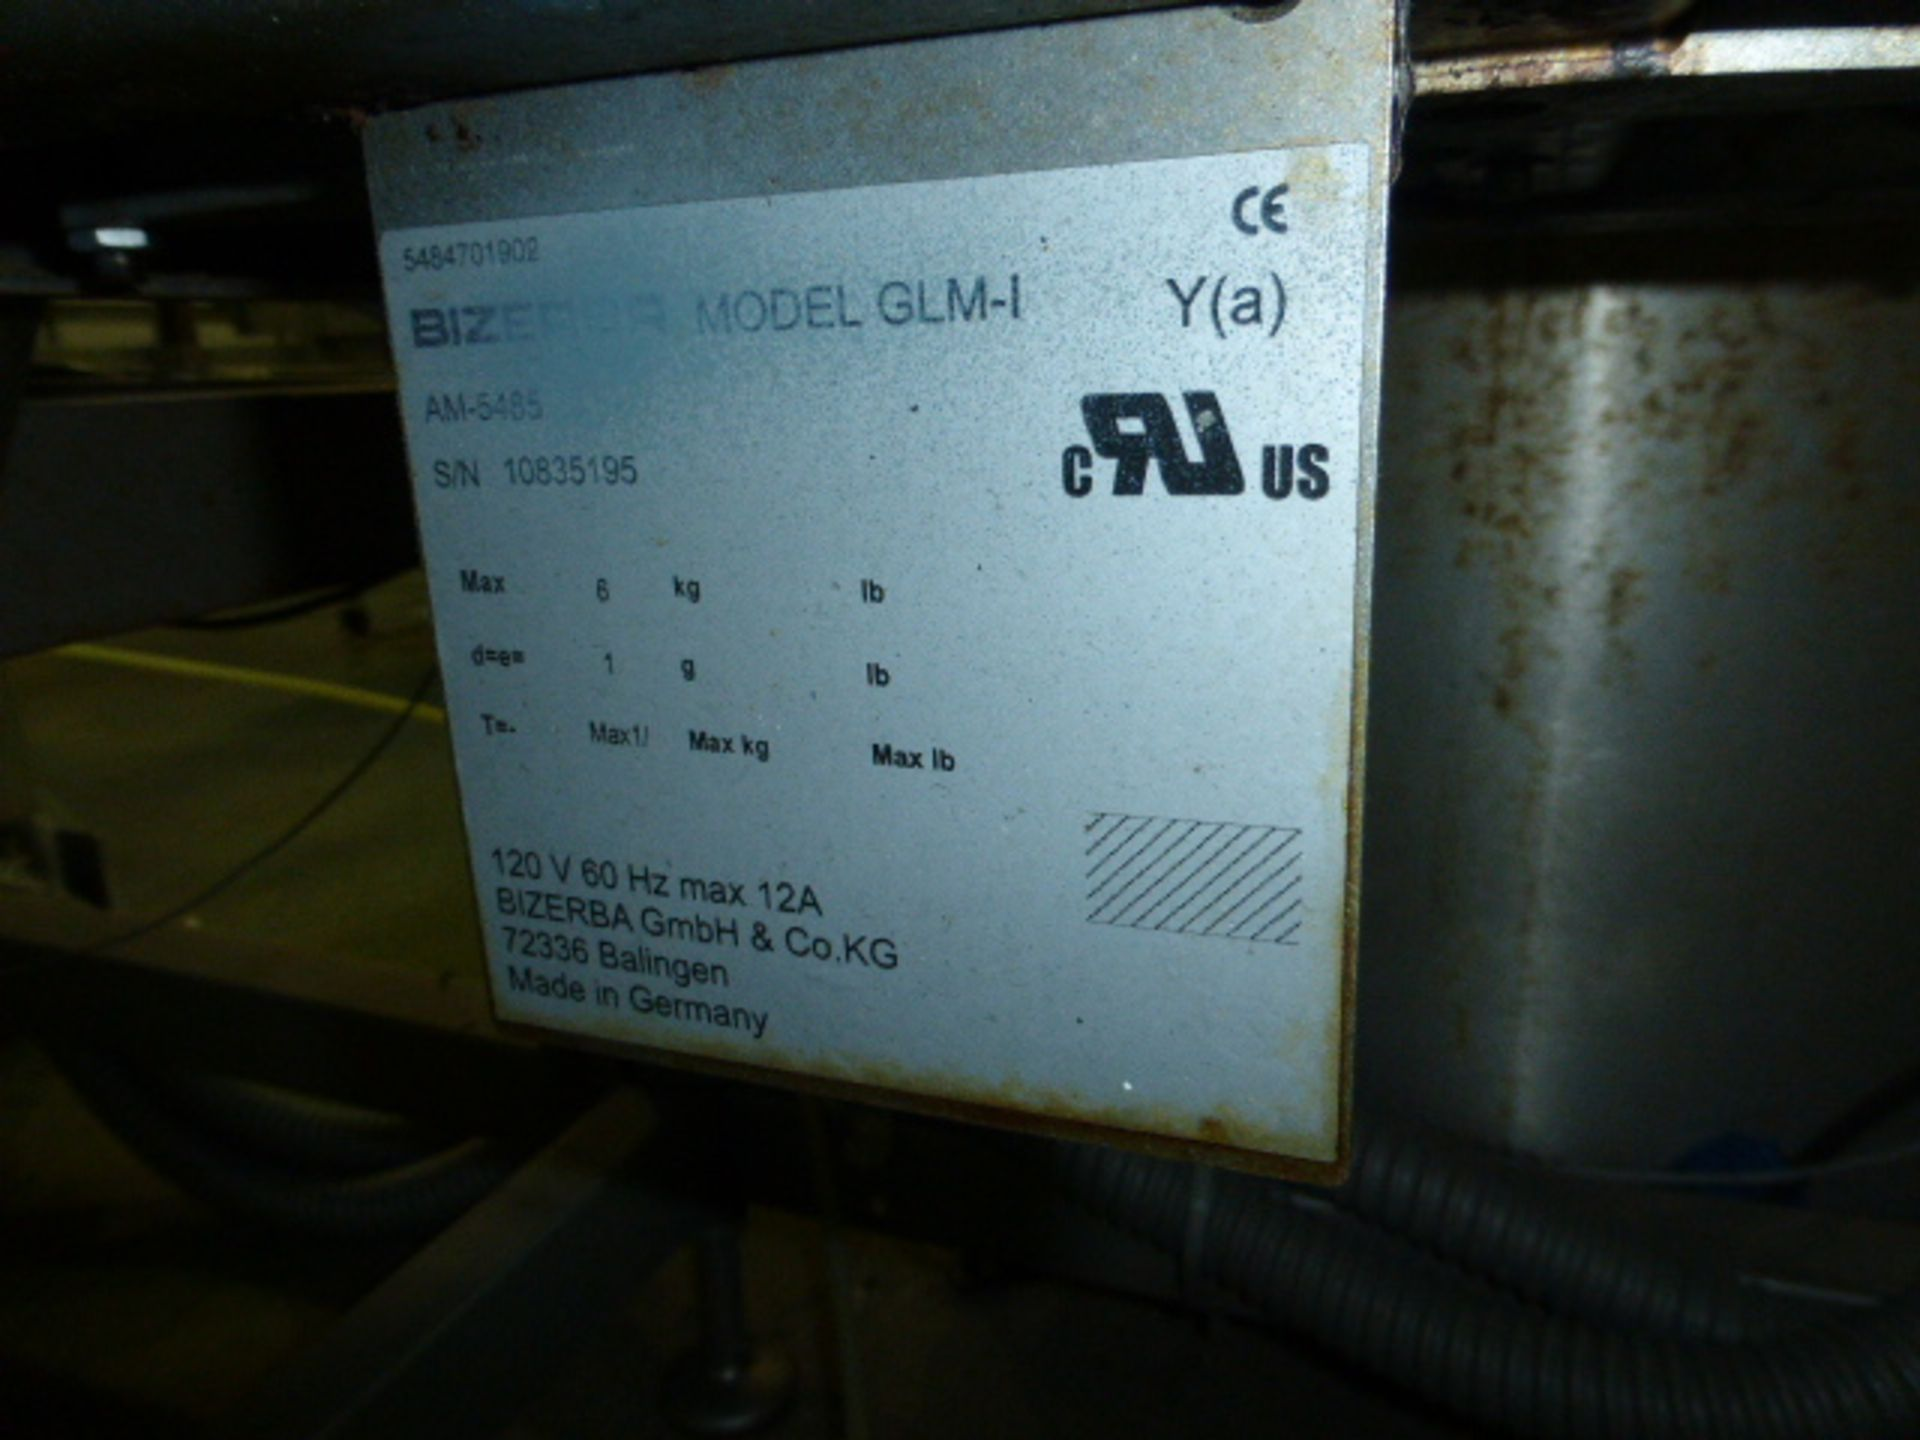 Lot 22 - Bizerba scale and labeler, model GLM-I, s/n 10835195